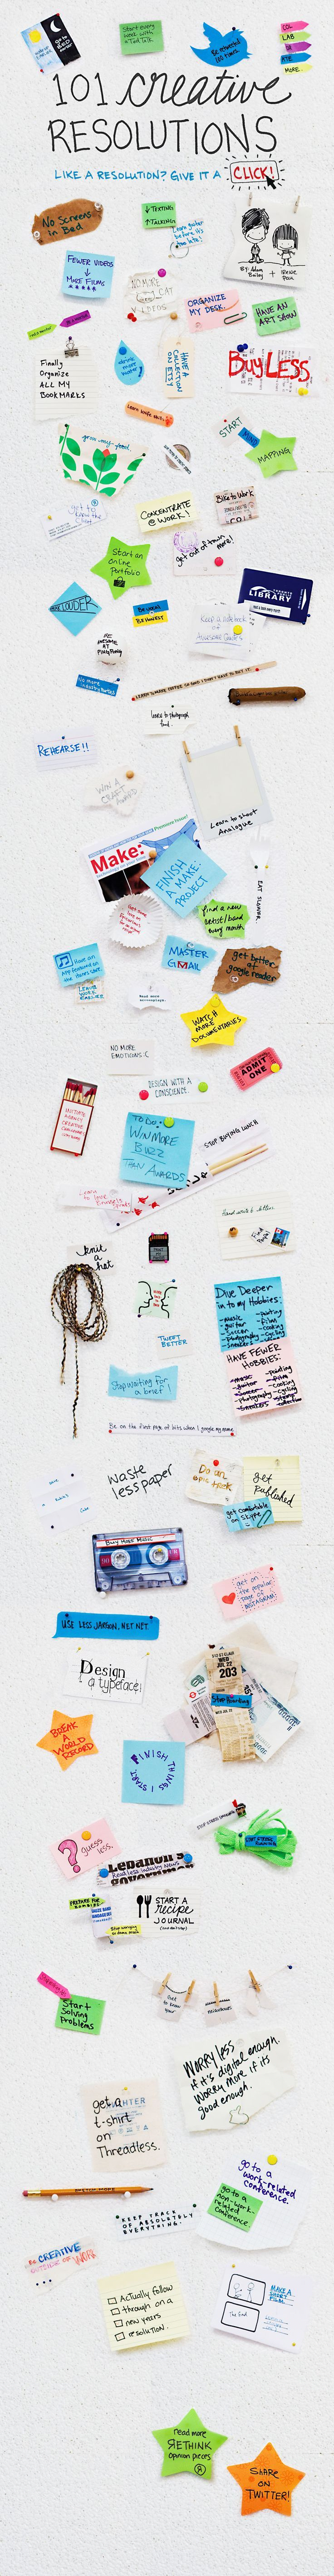 101 creative Resolutions.  If you go to original site and click on each item, it takes you to another site that can help you achieve your resolution